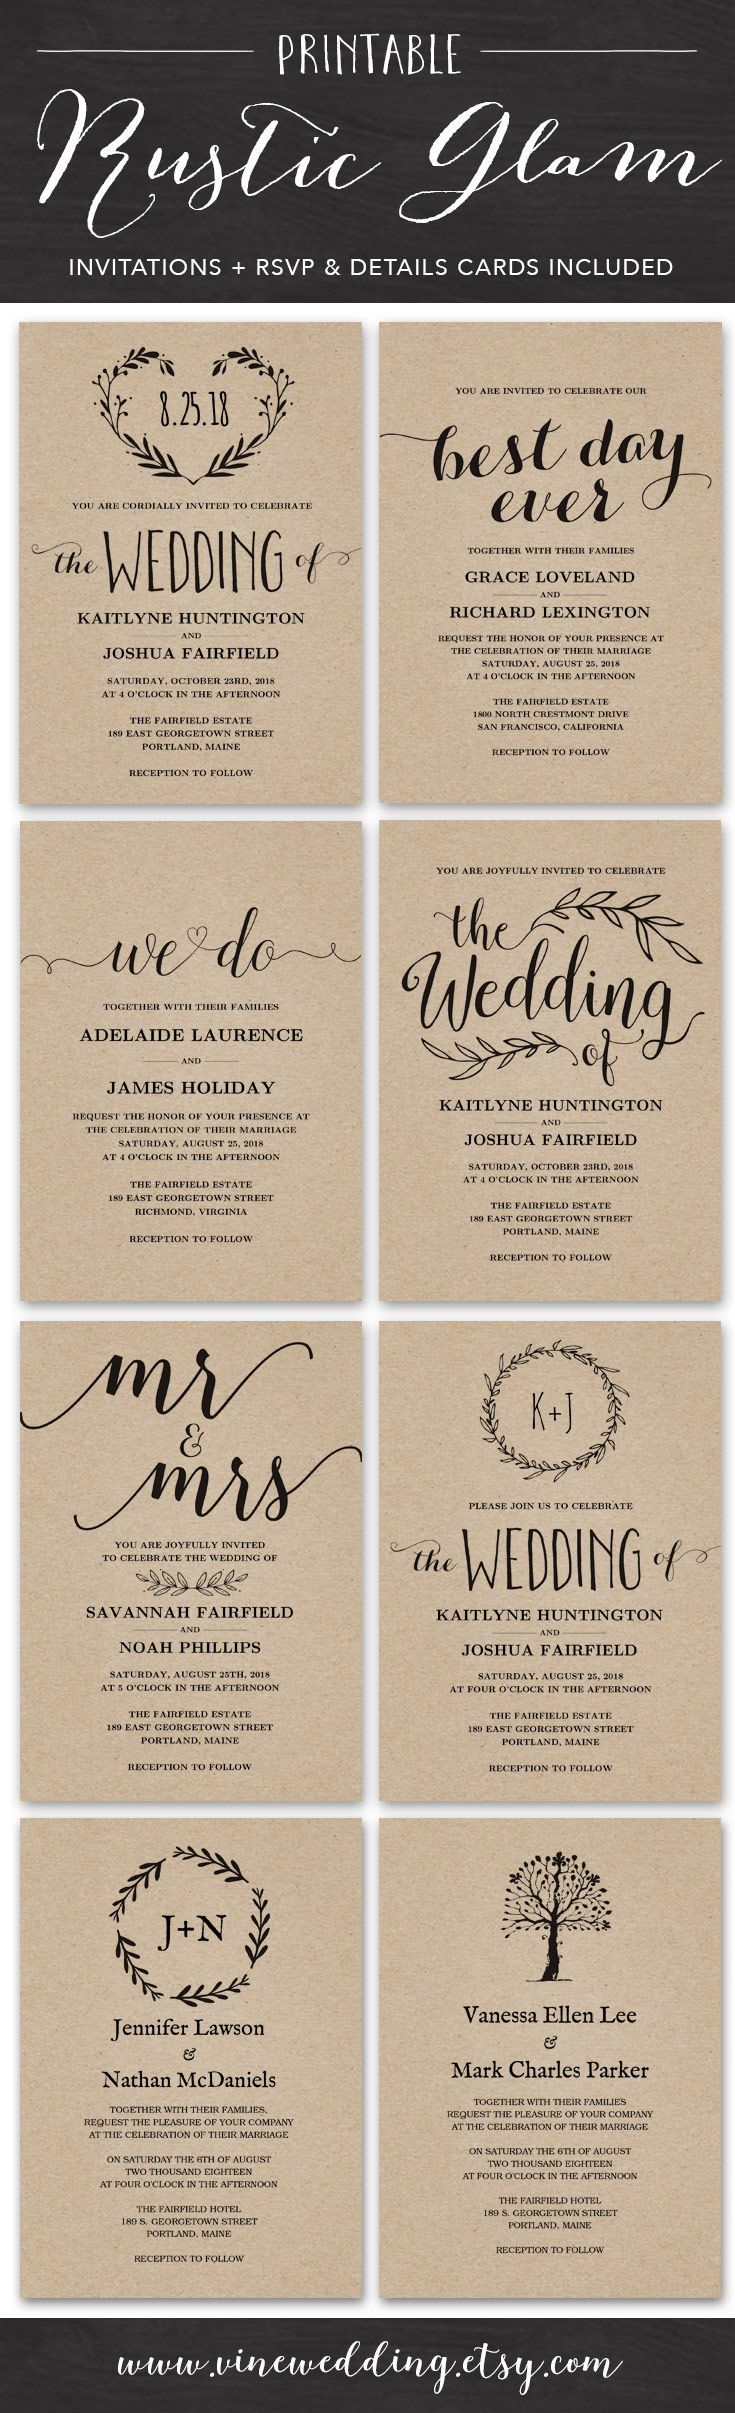 Rustic Wedding Invitations Printable DIY Wedding Invitation